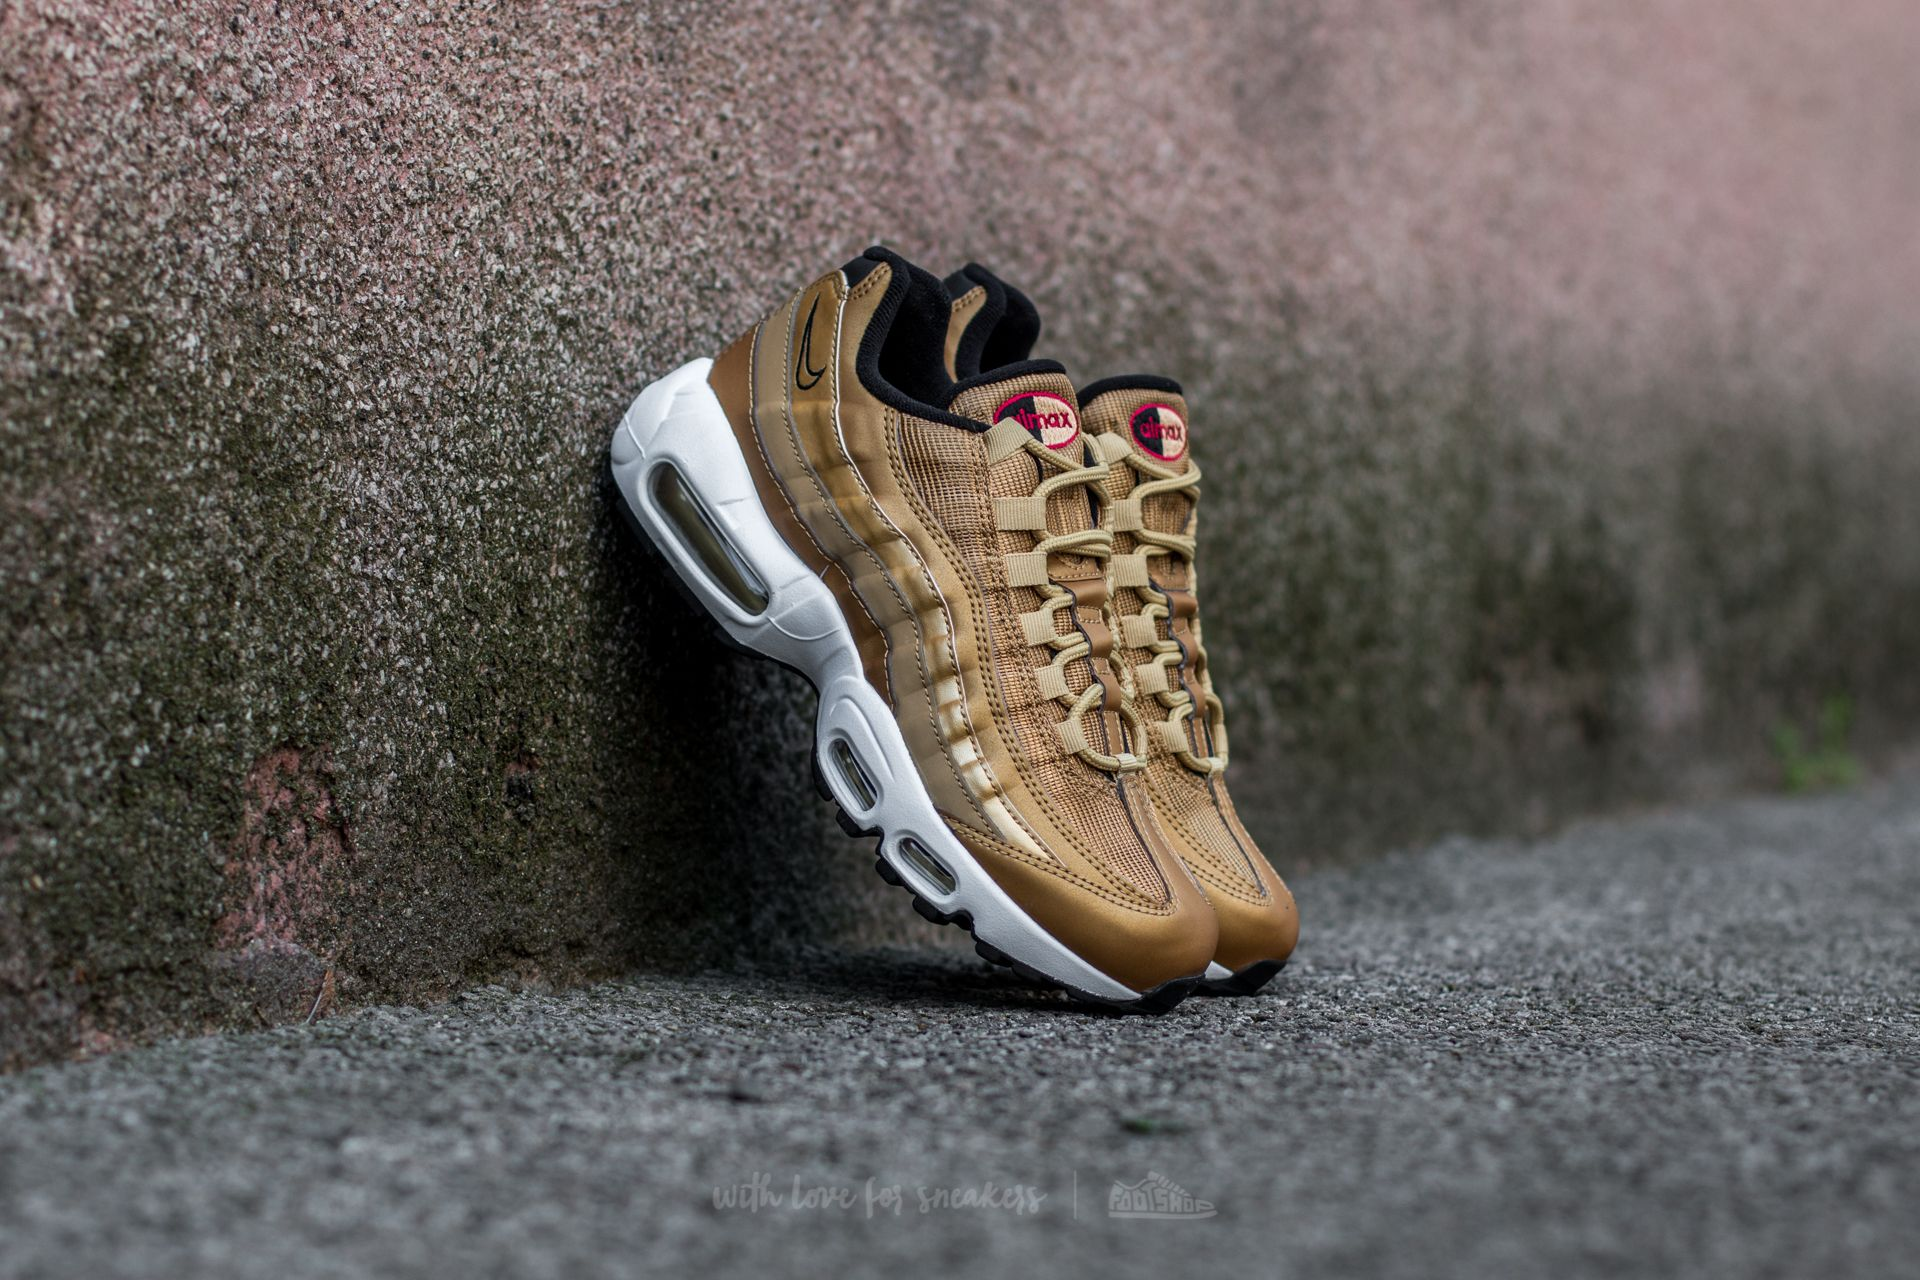 official photos 5632b 7bce0 Nike Air Max 95 Premium QS. Metallic Gold Varsity Red